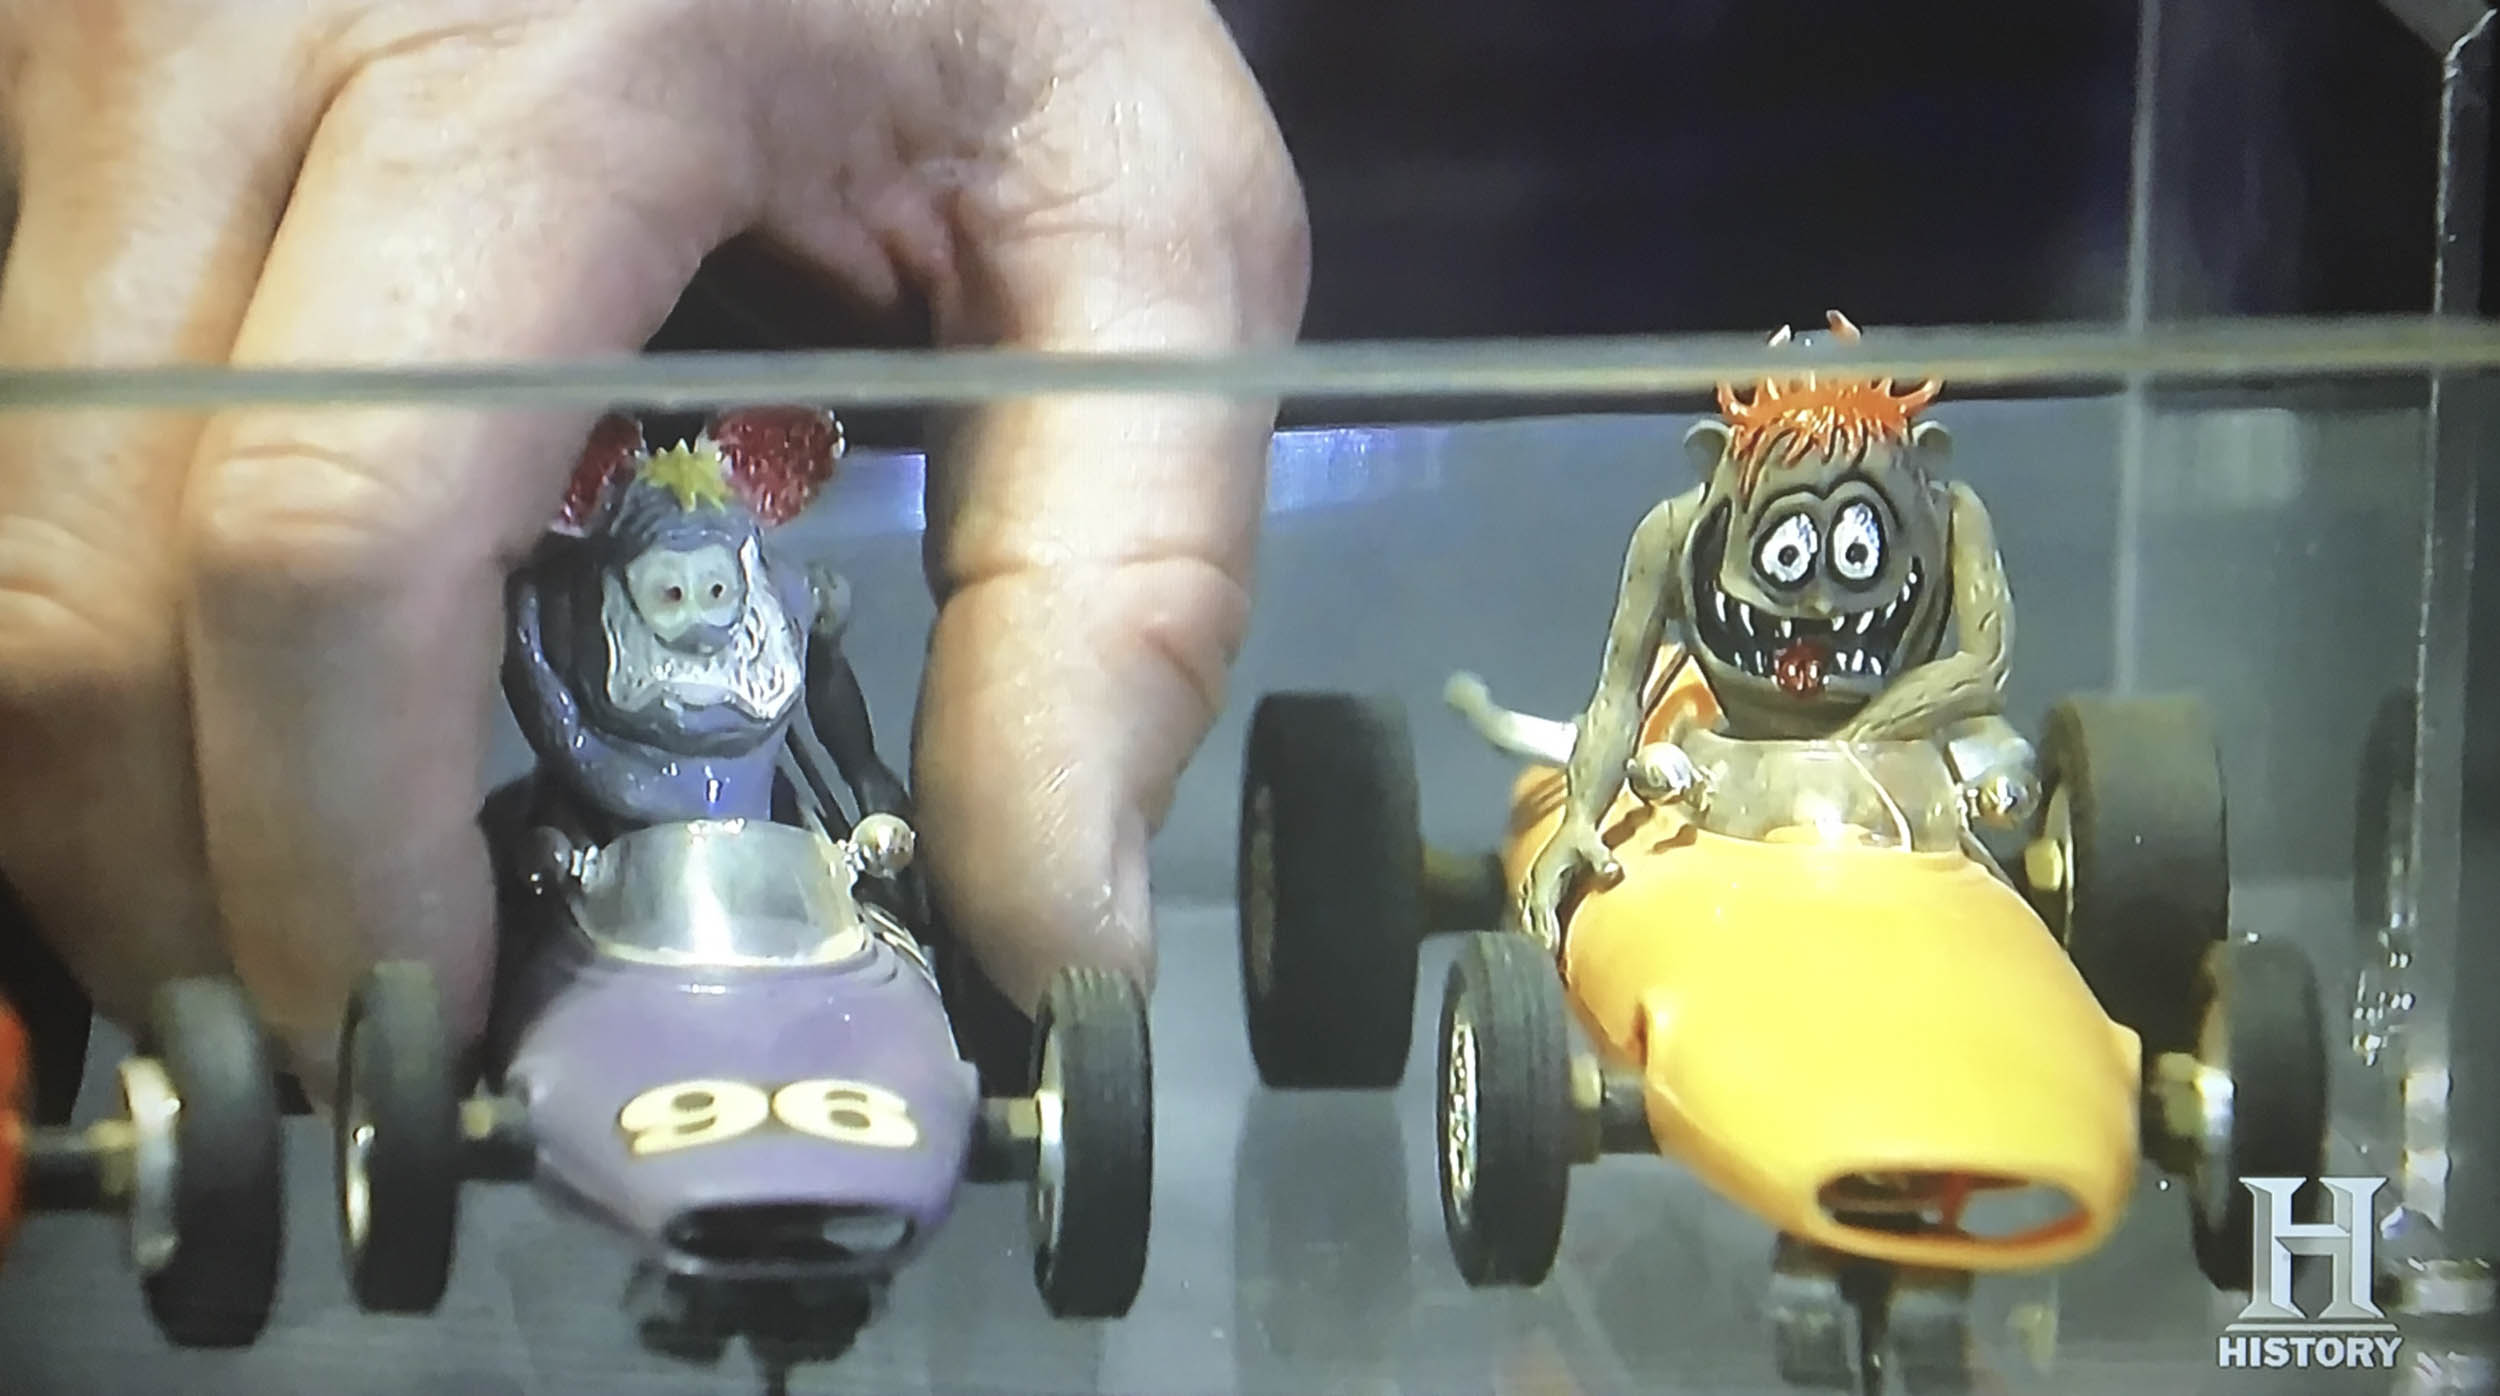 A fan of Big Daddy Roth and his popular cartoon characters Rat Fink and Gasser, Mike Wolfe scored a pair of mid-1960s slot cars for $90 each.